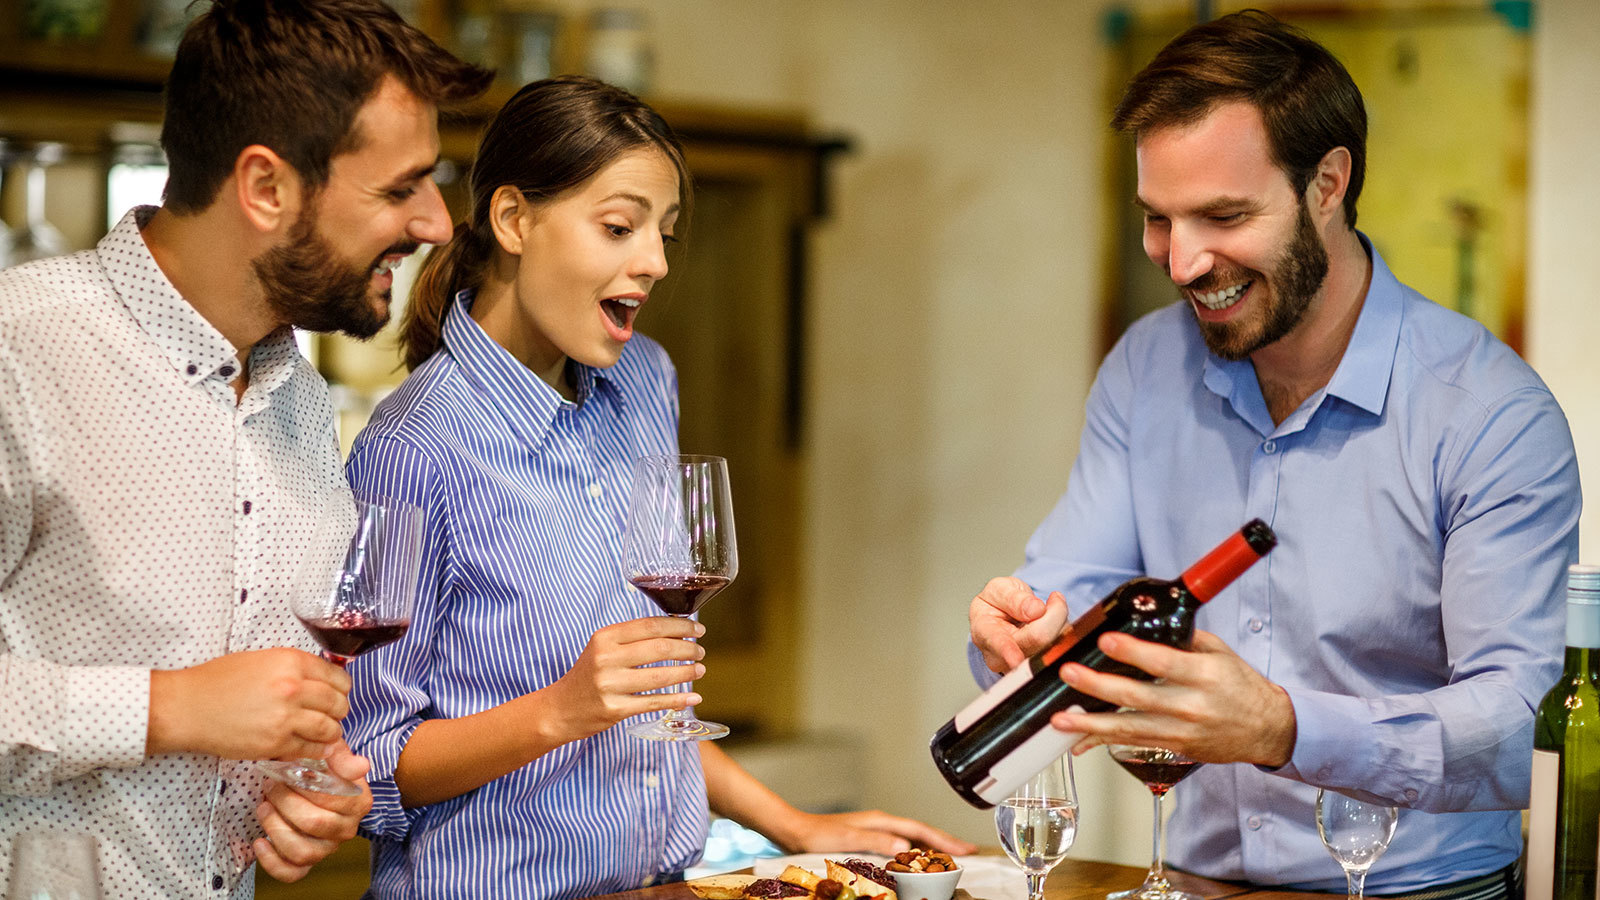 Sommelier Roundtable: What's Your Favorite 'against The Rules' Wine And Food Pairing? photo